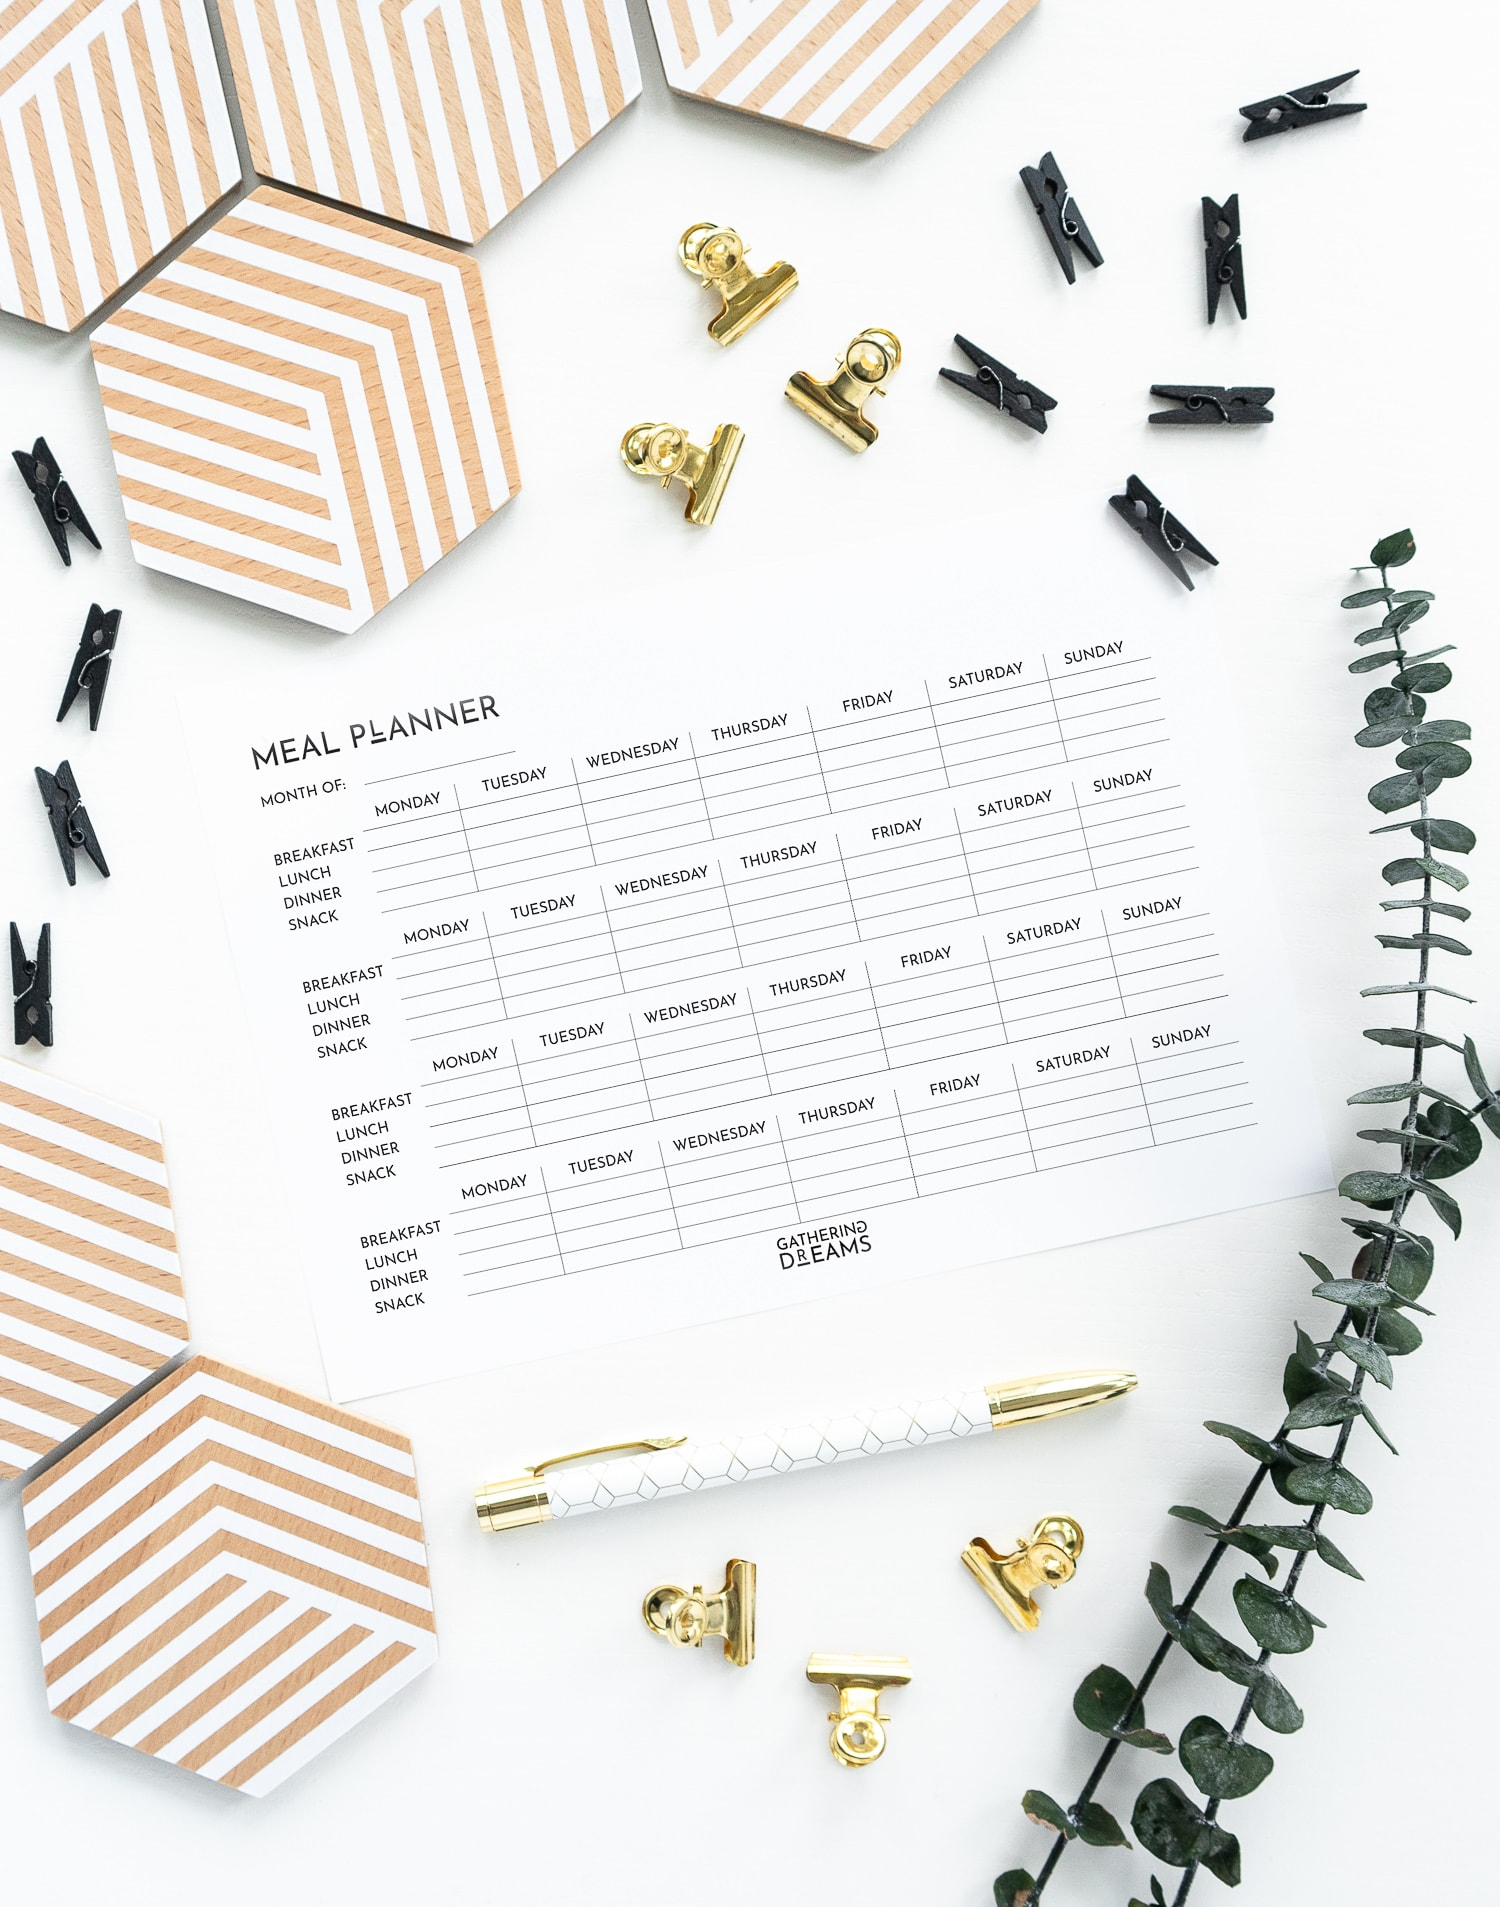 Meal Planner Minimalist Design: Monthly Meal Planner